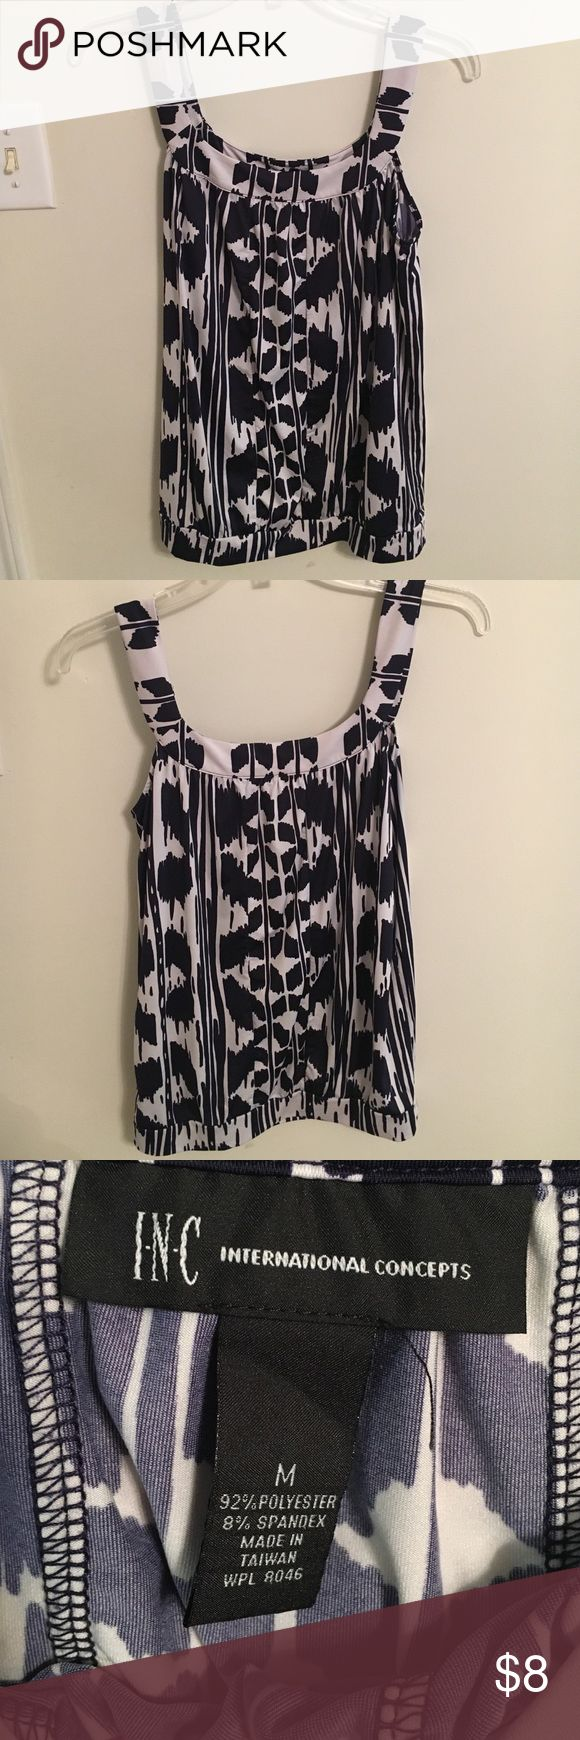 Dark Navy Blue and white blouse Dark Navy blue and white blouse. Blouse is too loose and big on my body. The pattern looks black but it is a dark Navy blue. Blouse is medium and only has been worn once. INC International Concepts Tops Blouses